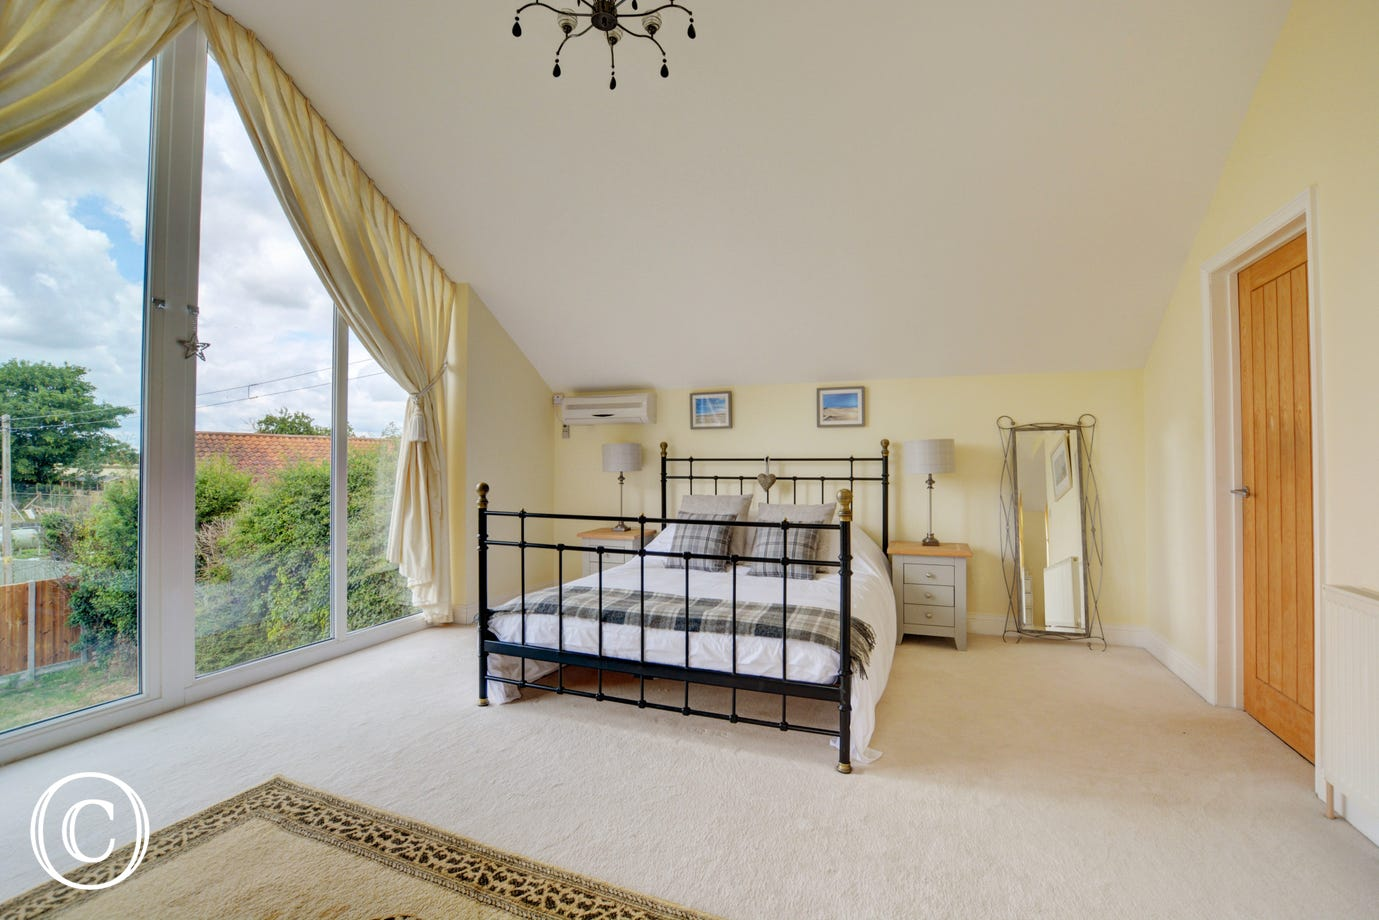 King size bedroom with lovely views